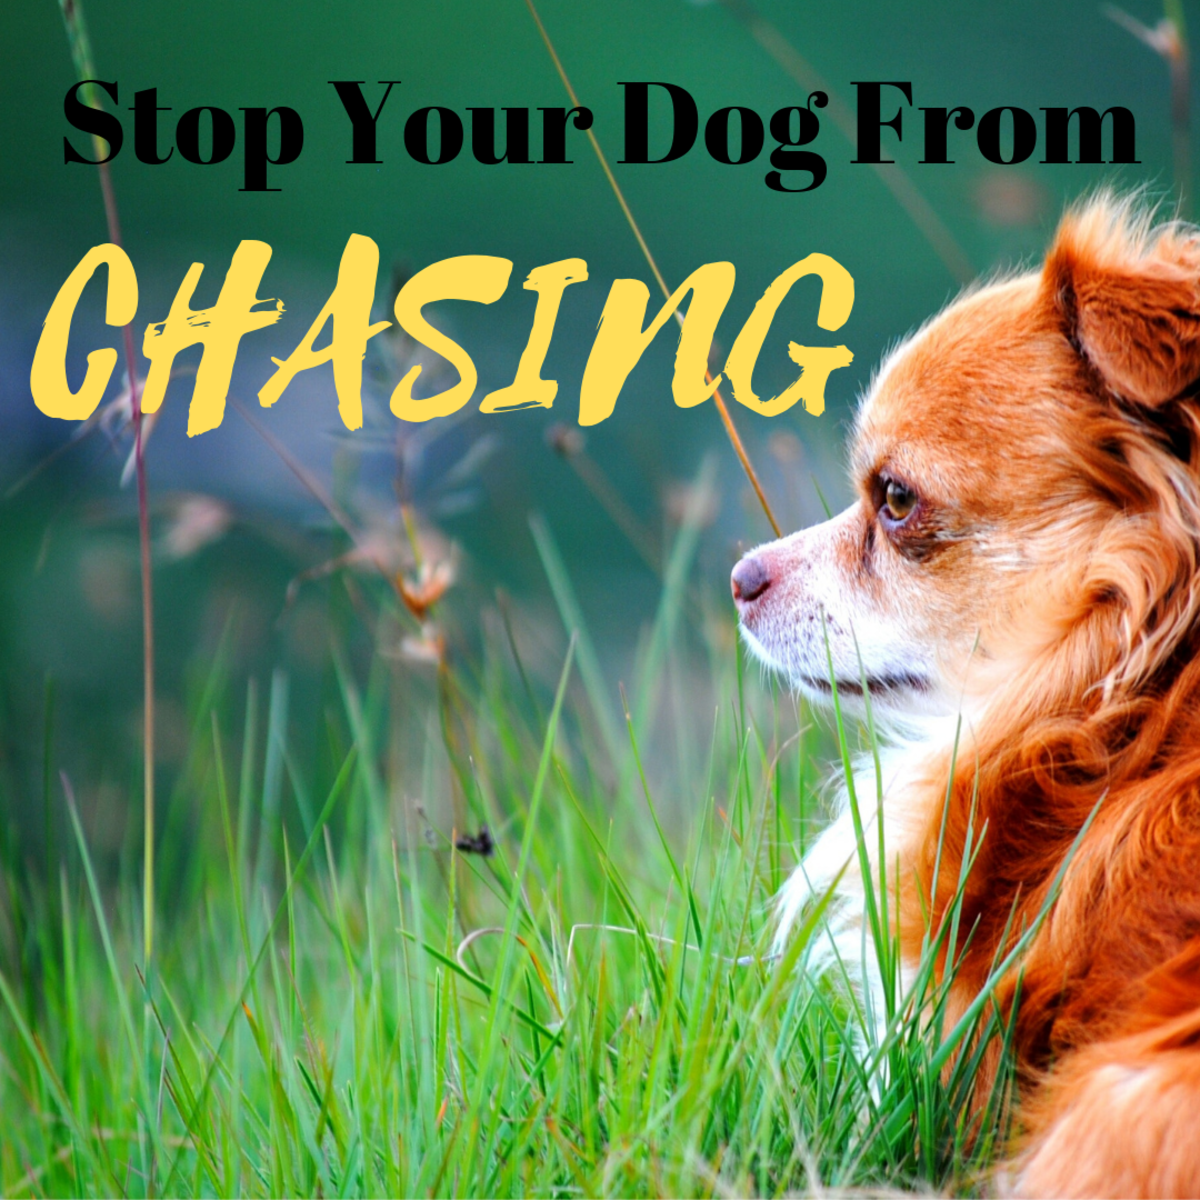 Stop Your Dog From Chasing Small Animals